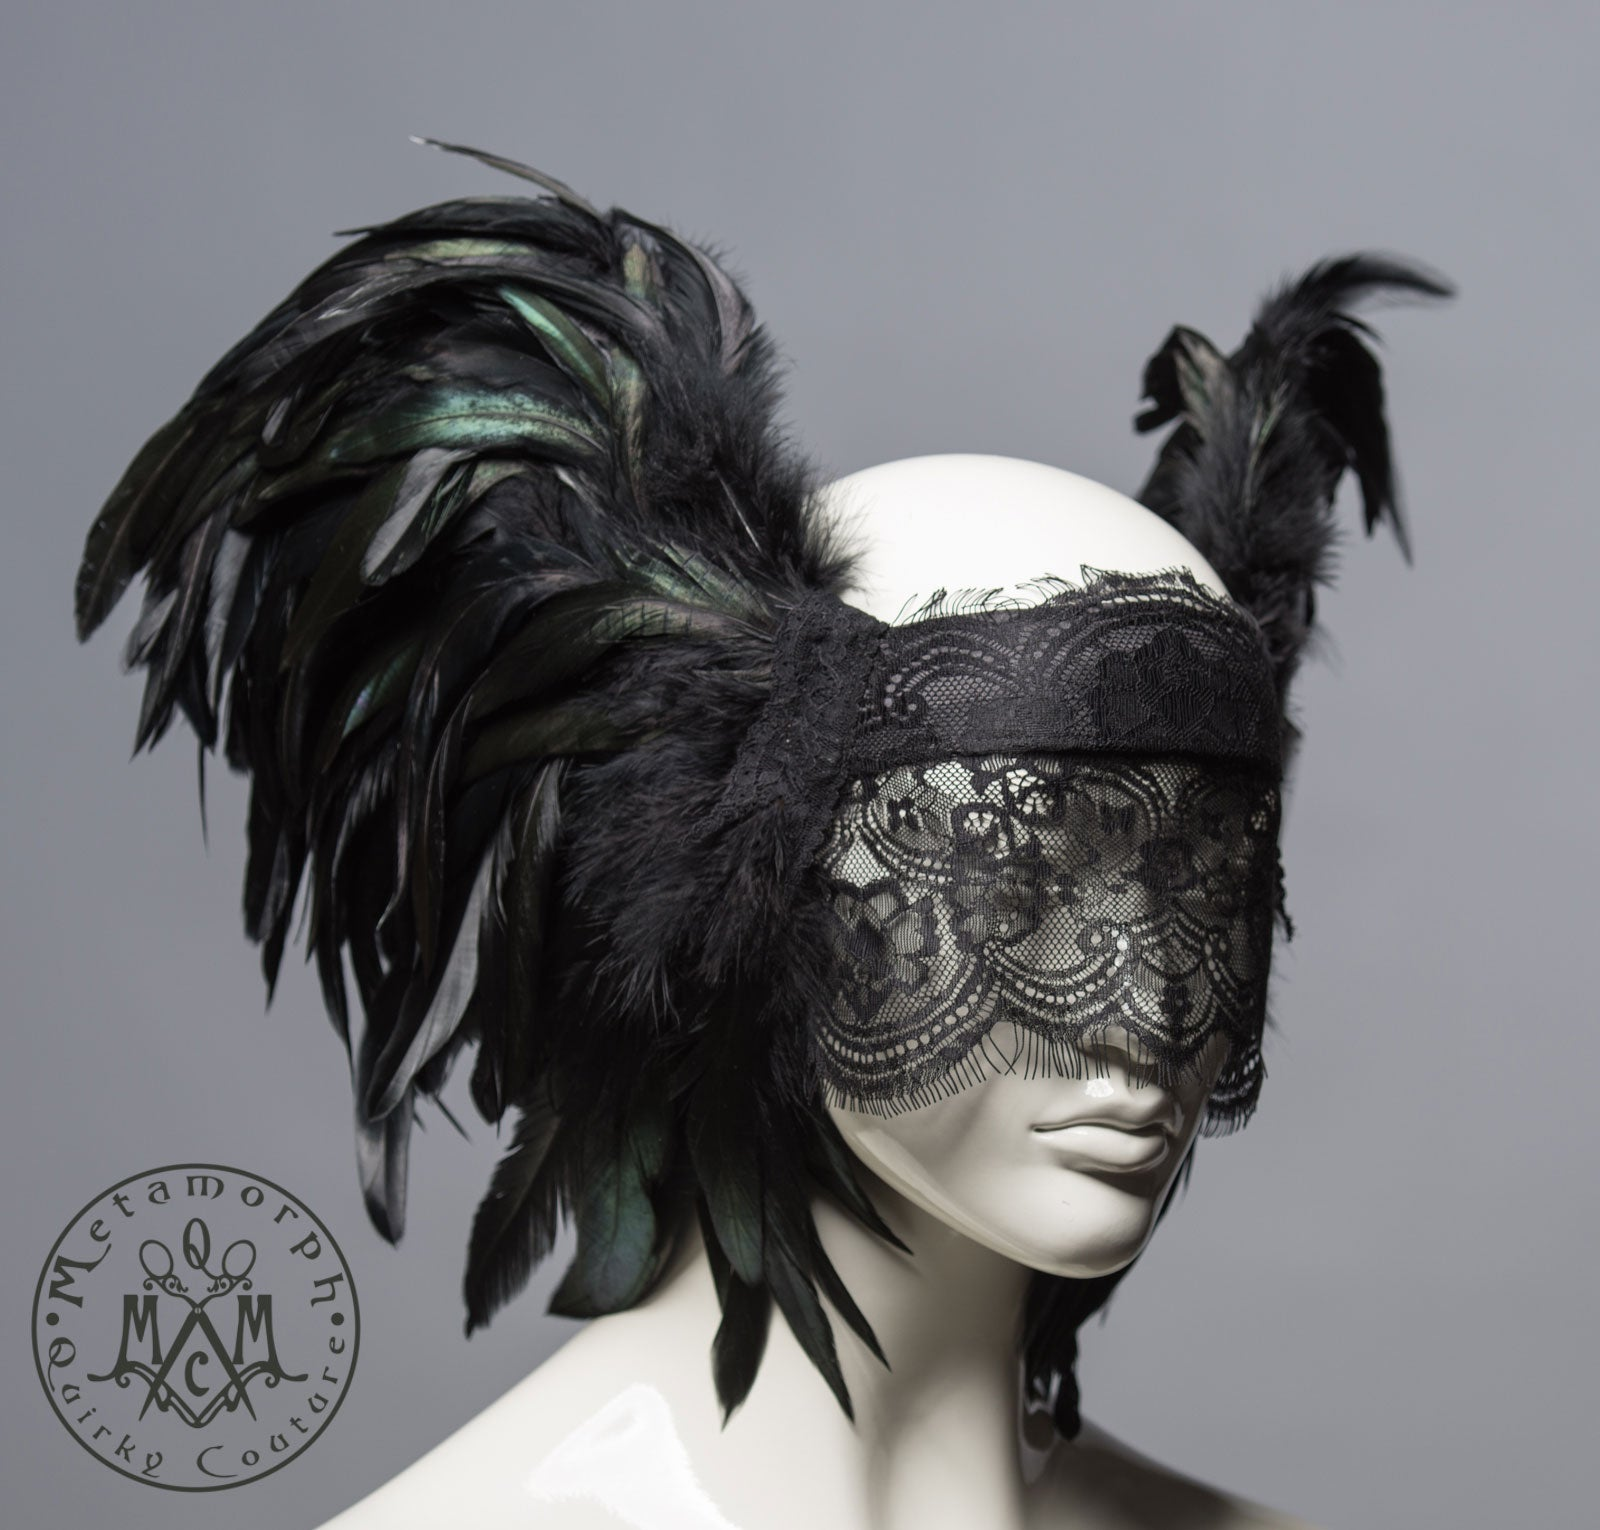 Feather wing headdress with lace veil / Black feather masquerade headdress / Wgt veiled headdress